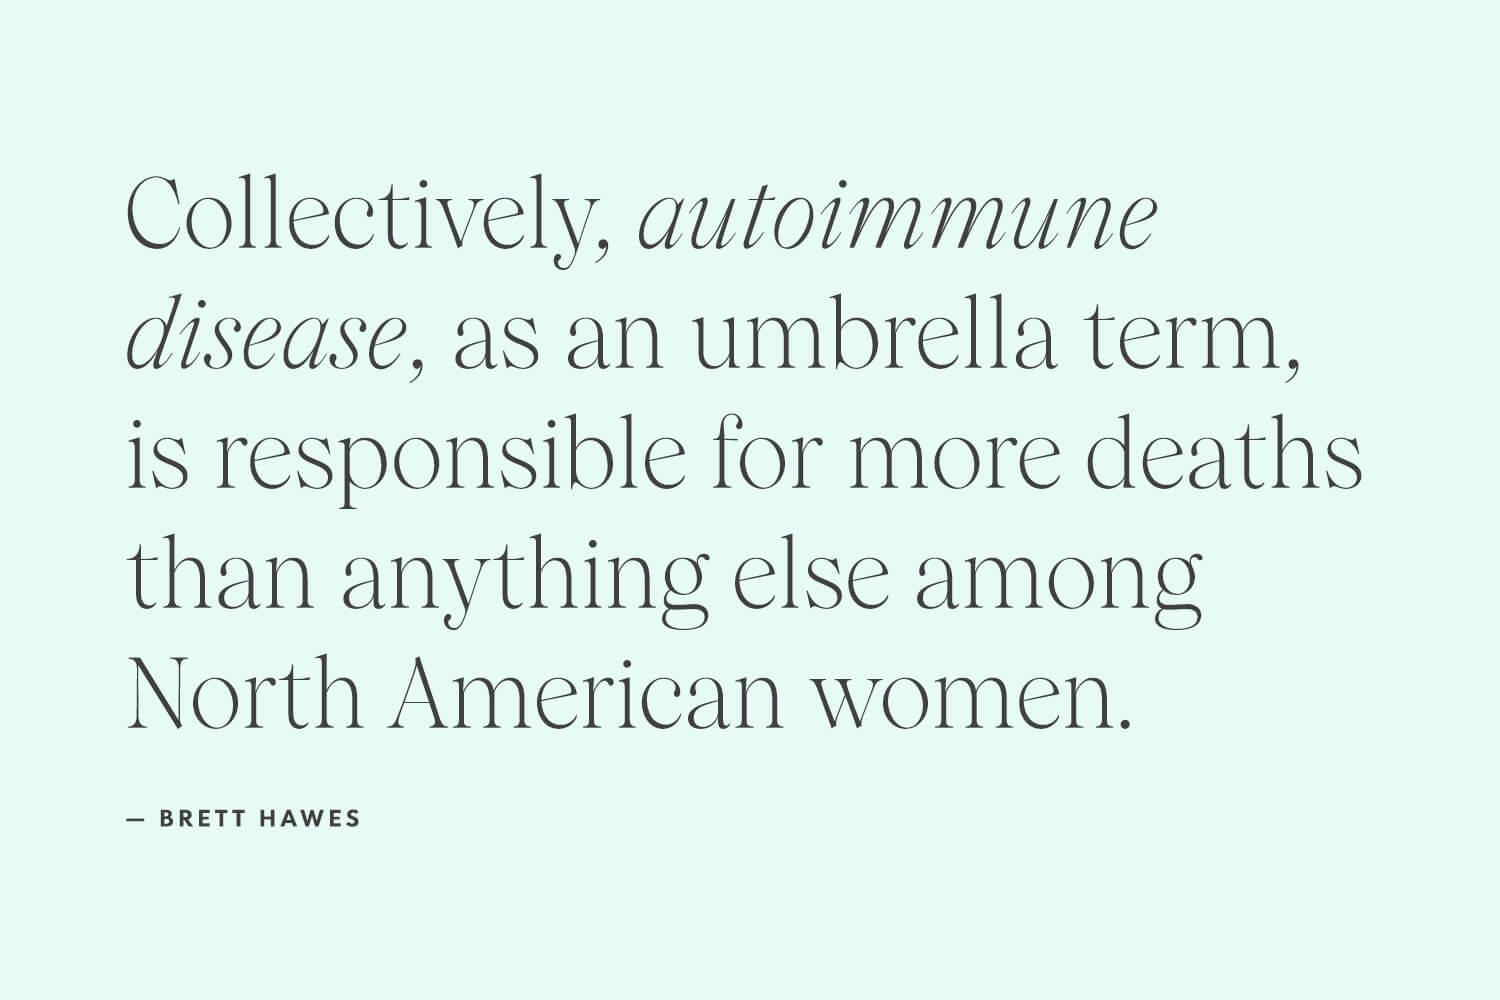 autoimmune disease quote